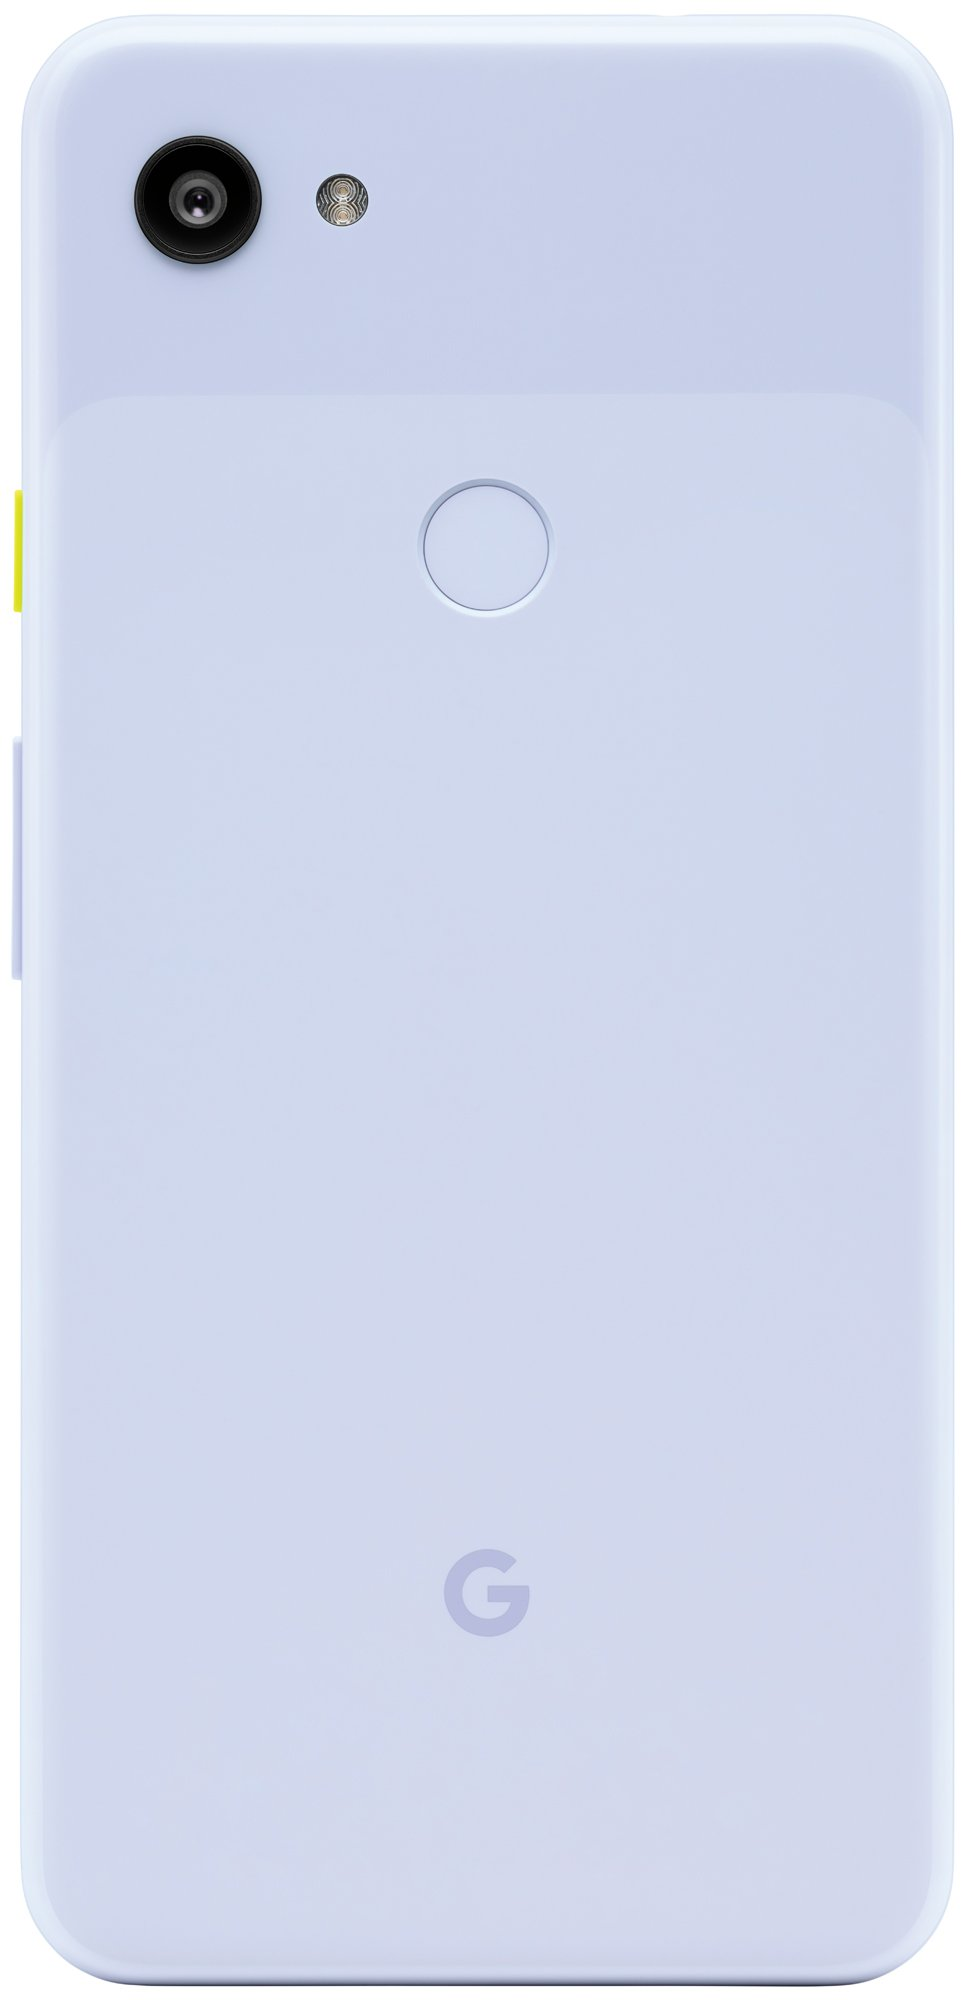 The Google Pixel 3a in Purplish colour